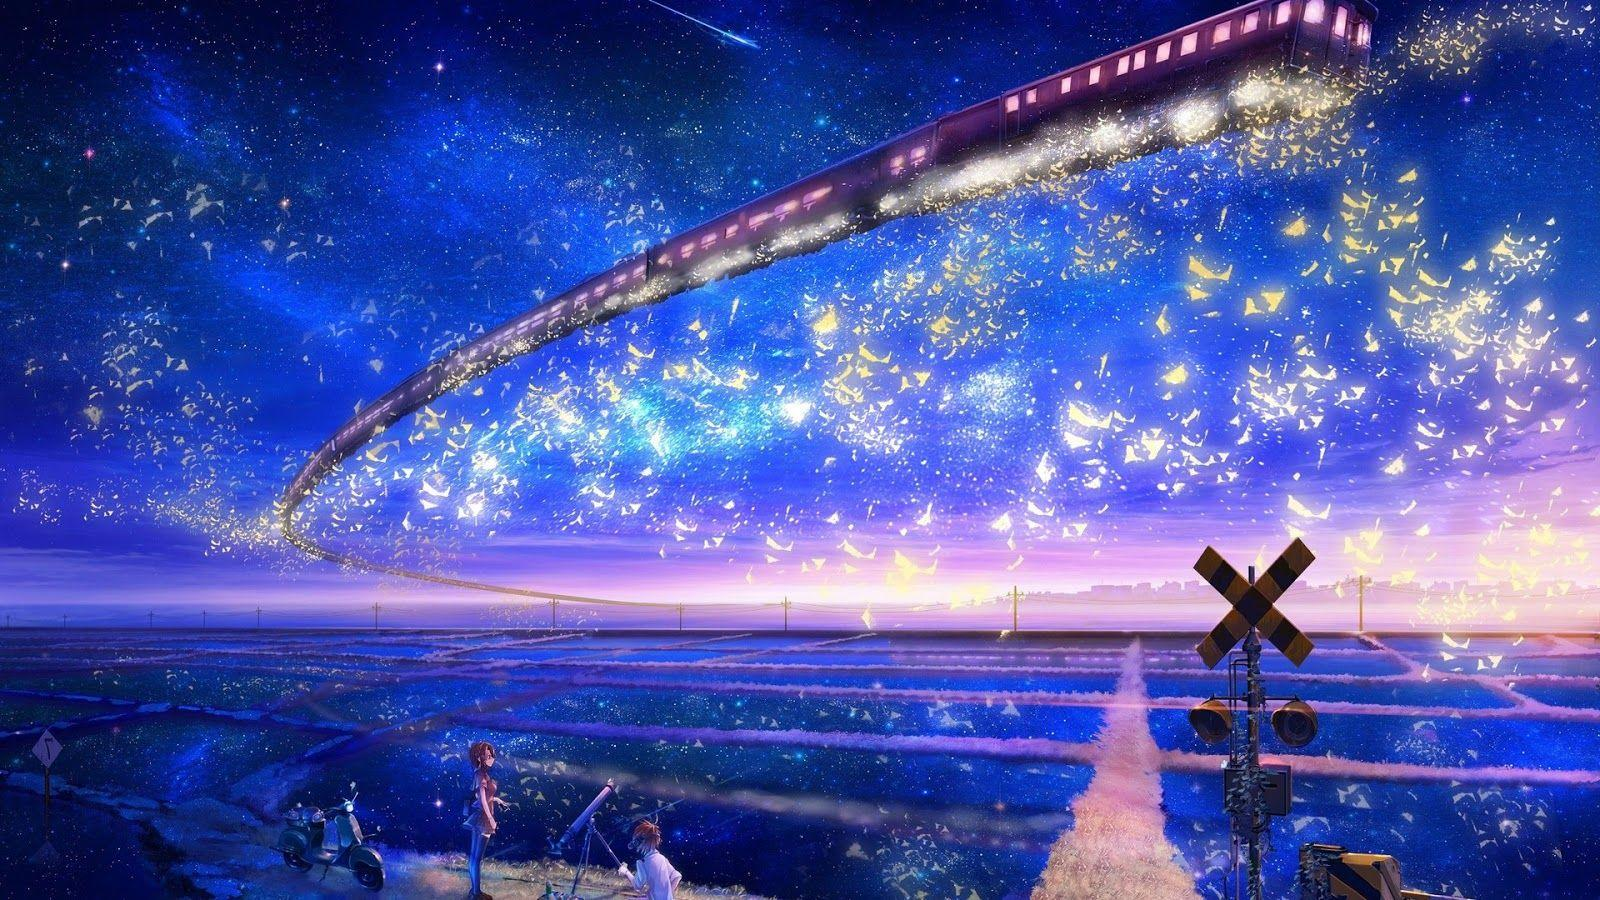 Beautiful Sky Anime Wallpapers Wallpaper Cave